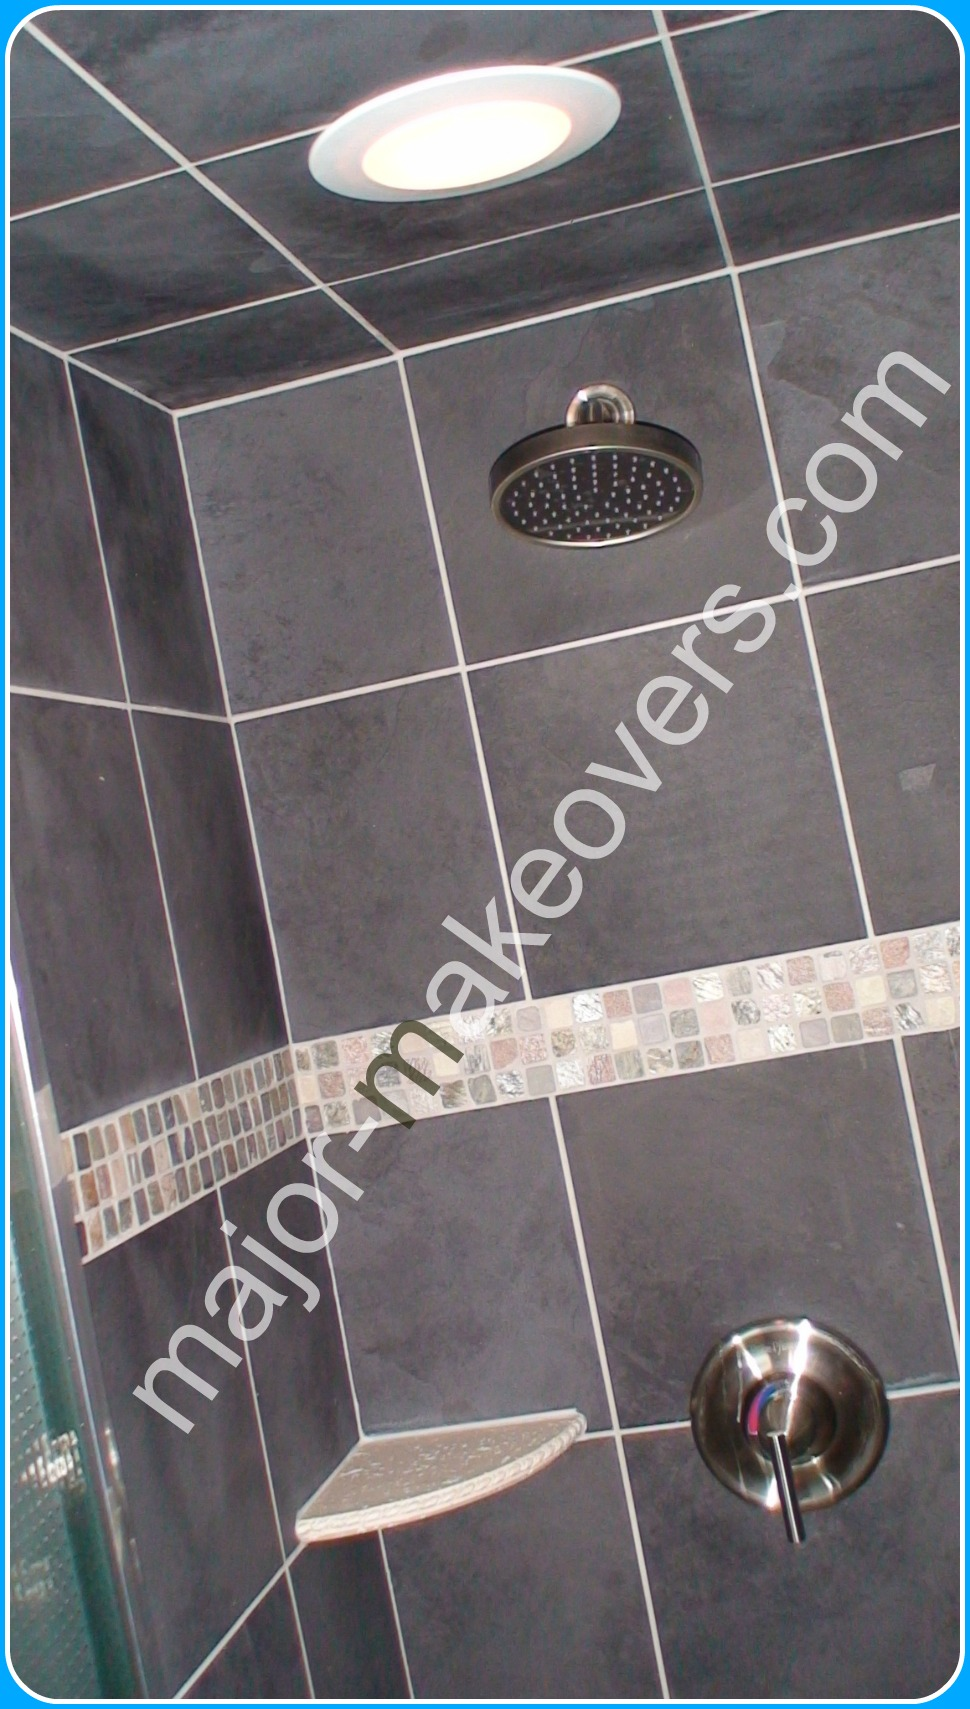 Basement shower tile as 12x12 inch black ceramic including on the shower ceiling. Decorative tile line and 2 corner soap dishes complete the tile installation.